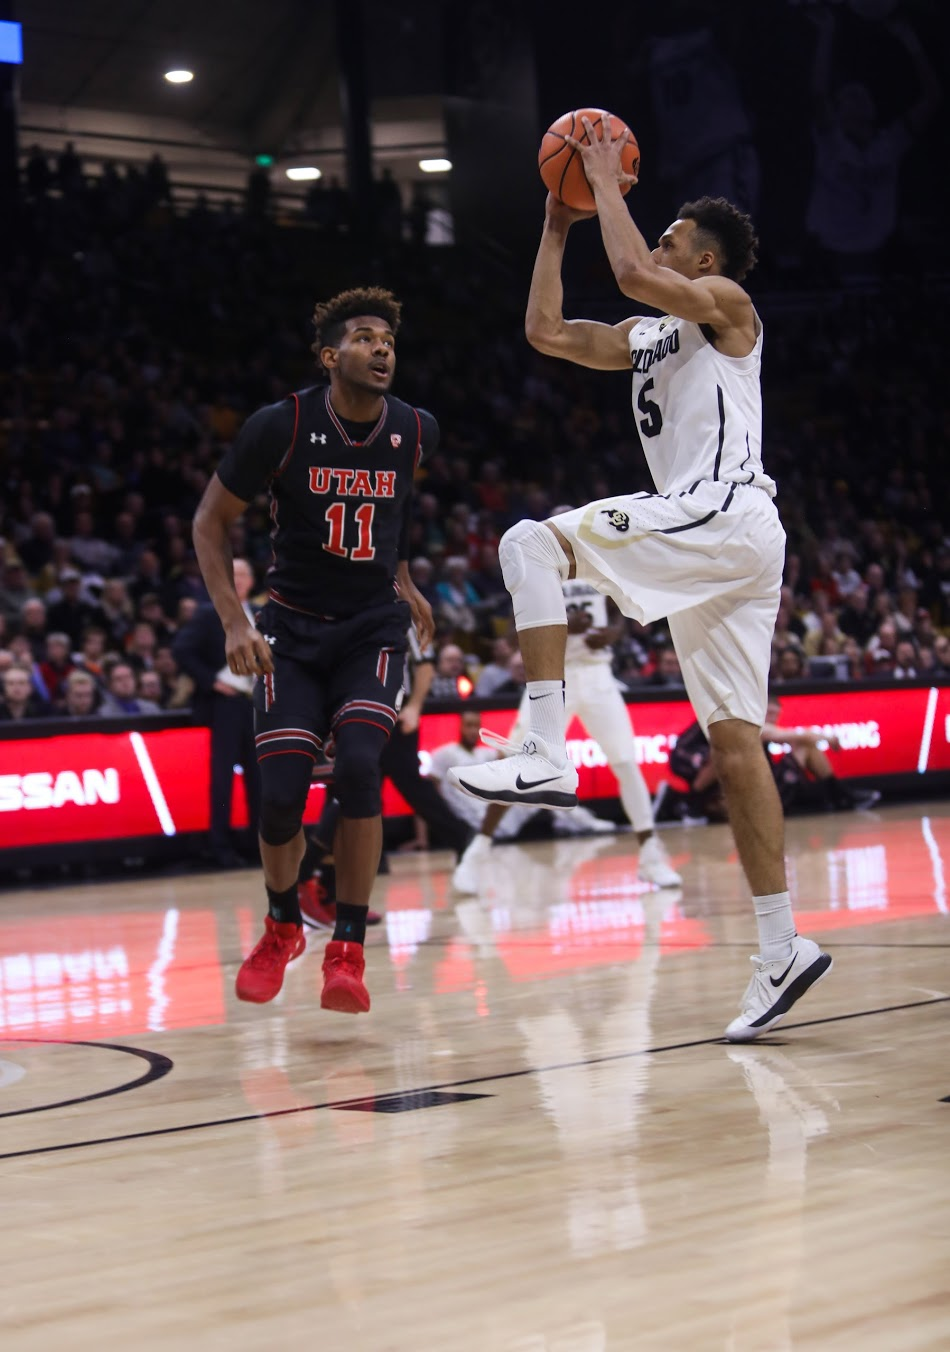 Buffs claim bounce-back win over Utah 67-55